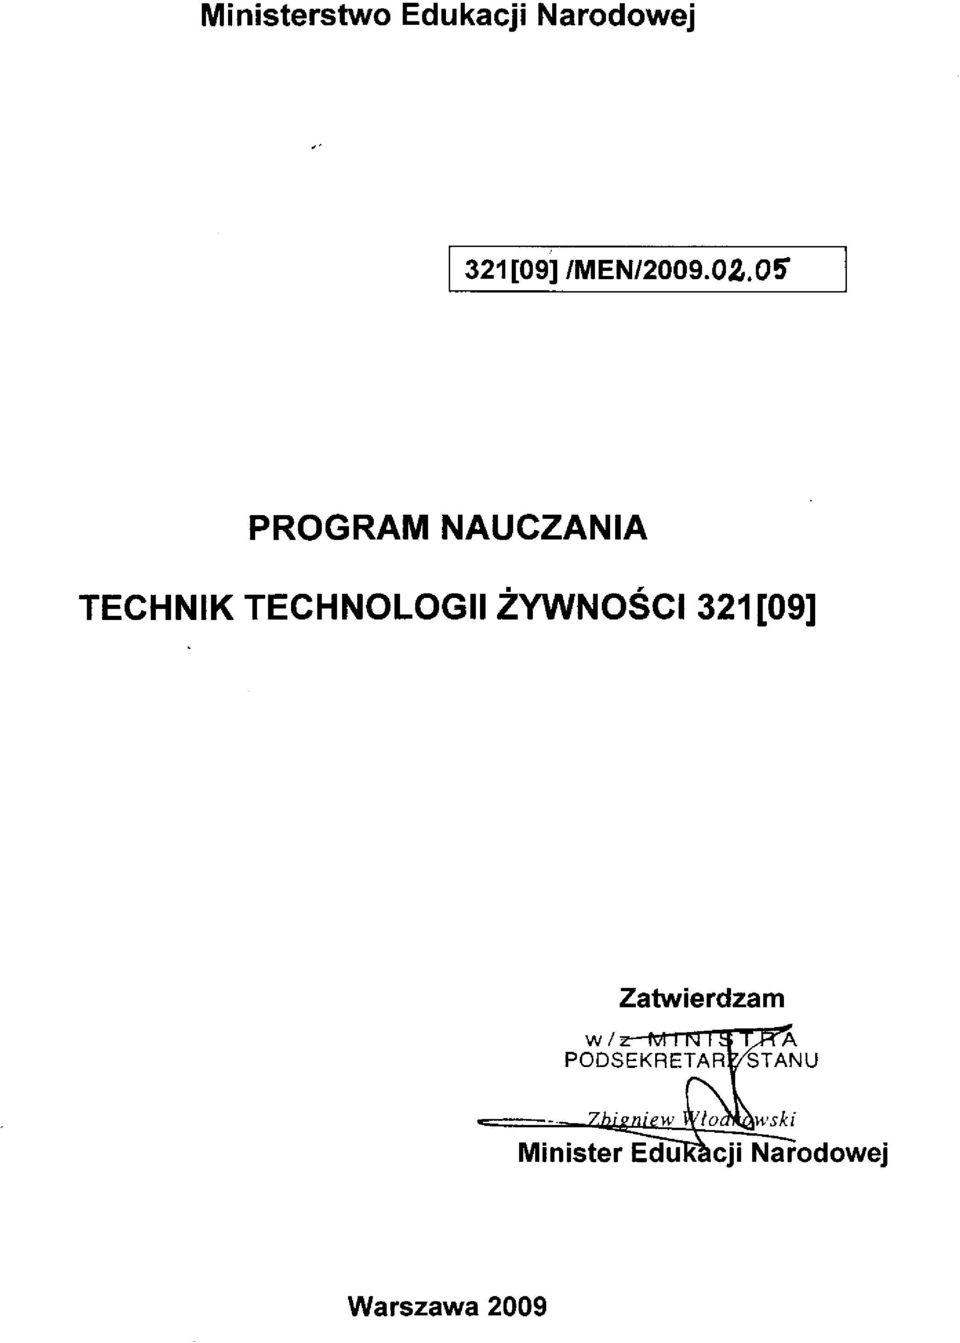 PROGRAM NAUCZANIA TECHNIK